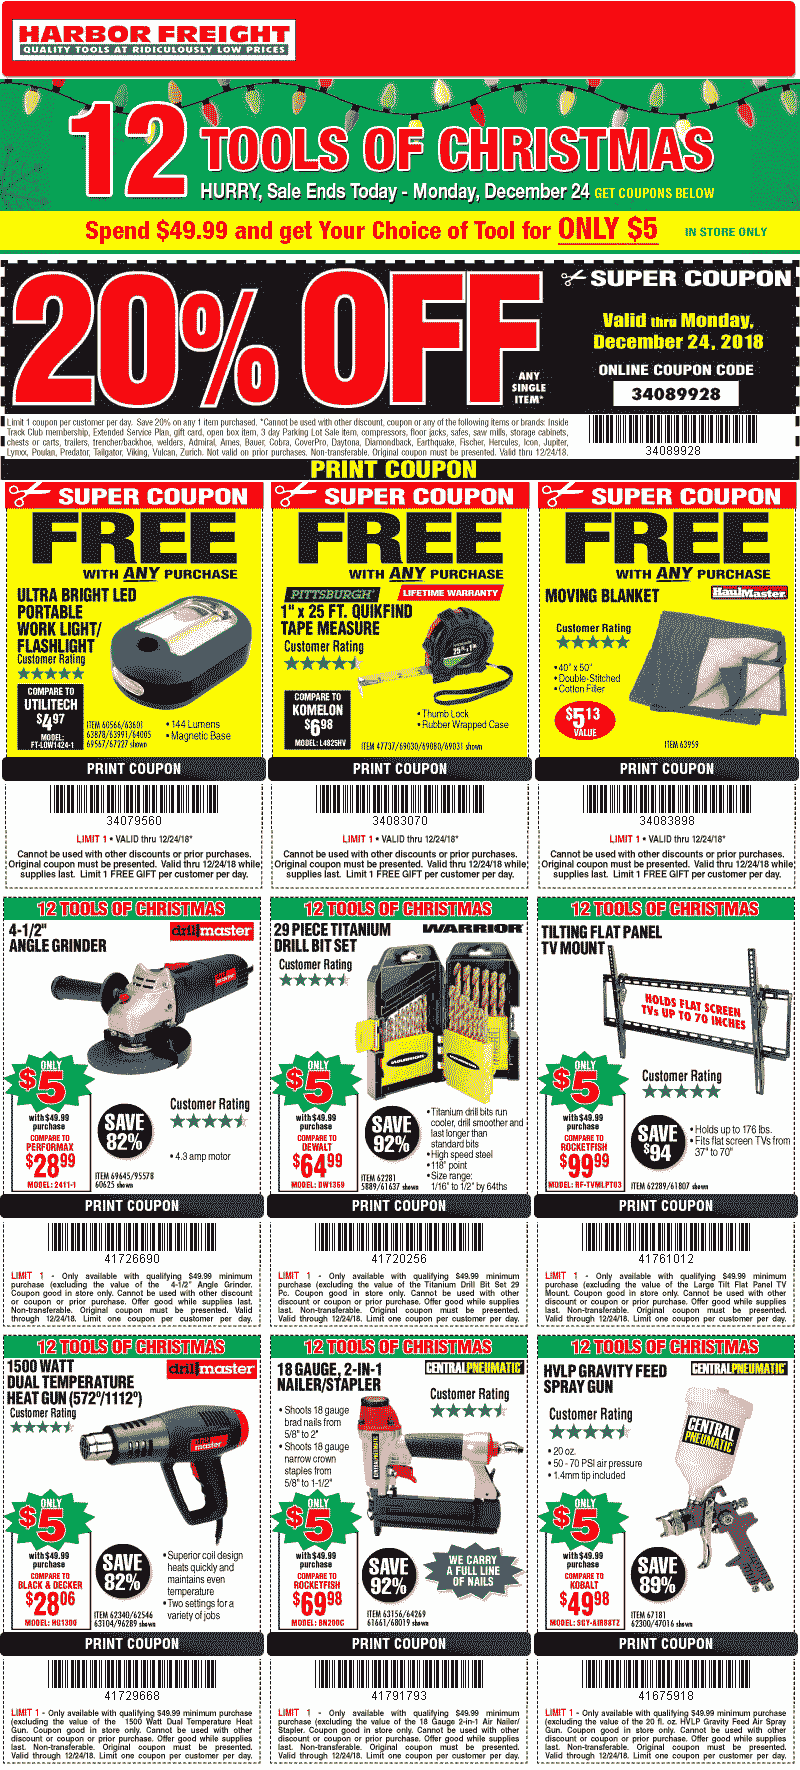 Harbor Freight Coupon July 2019 20% off a single item today at Harbor Freight Tools, or online via promo code 34089928